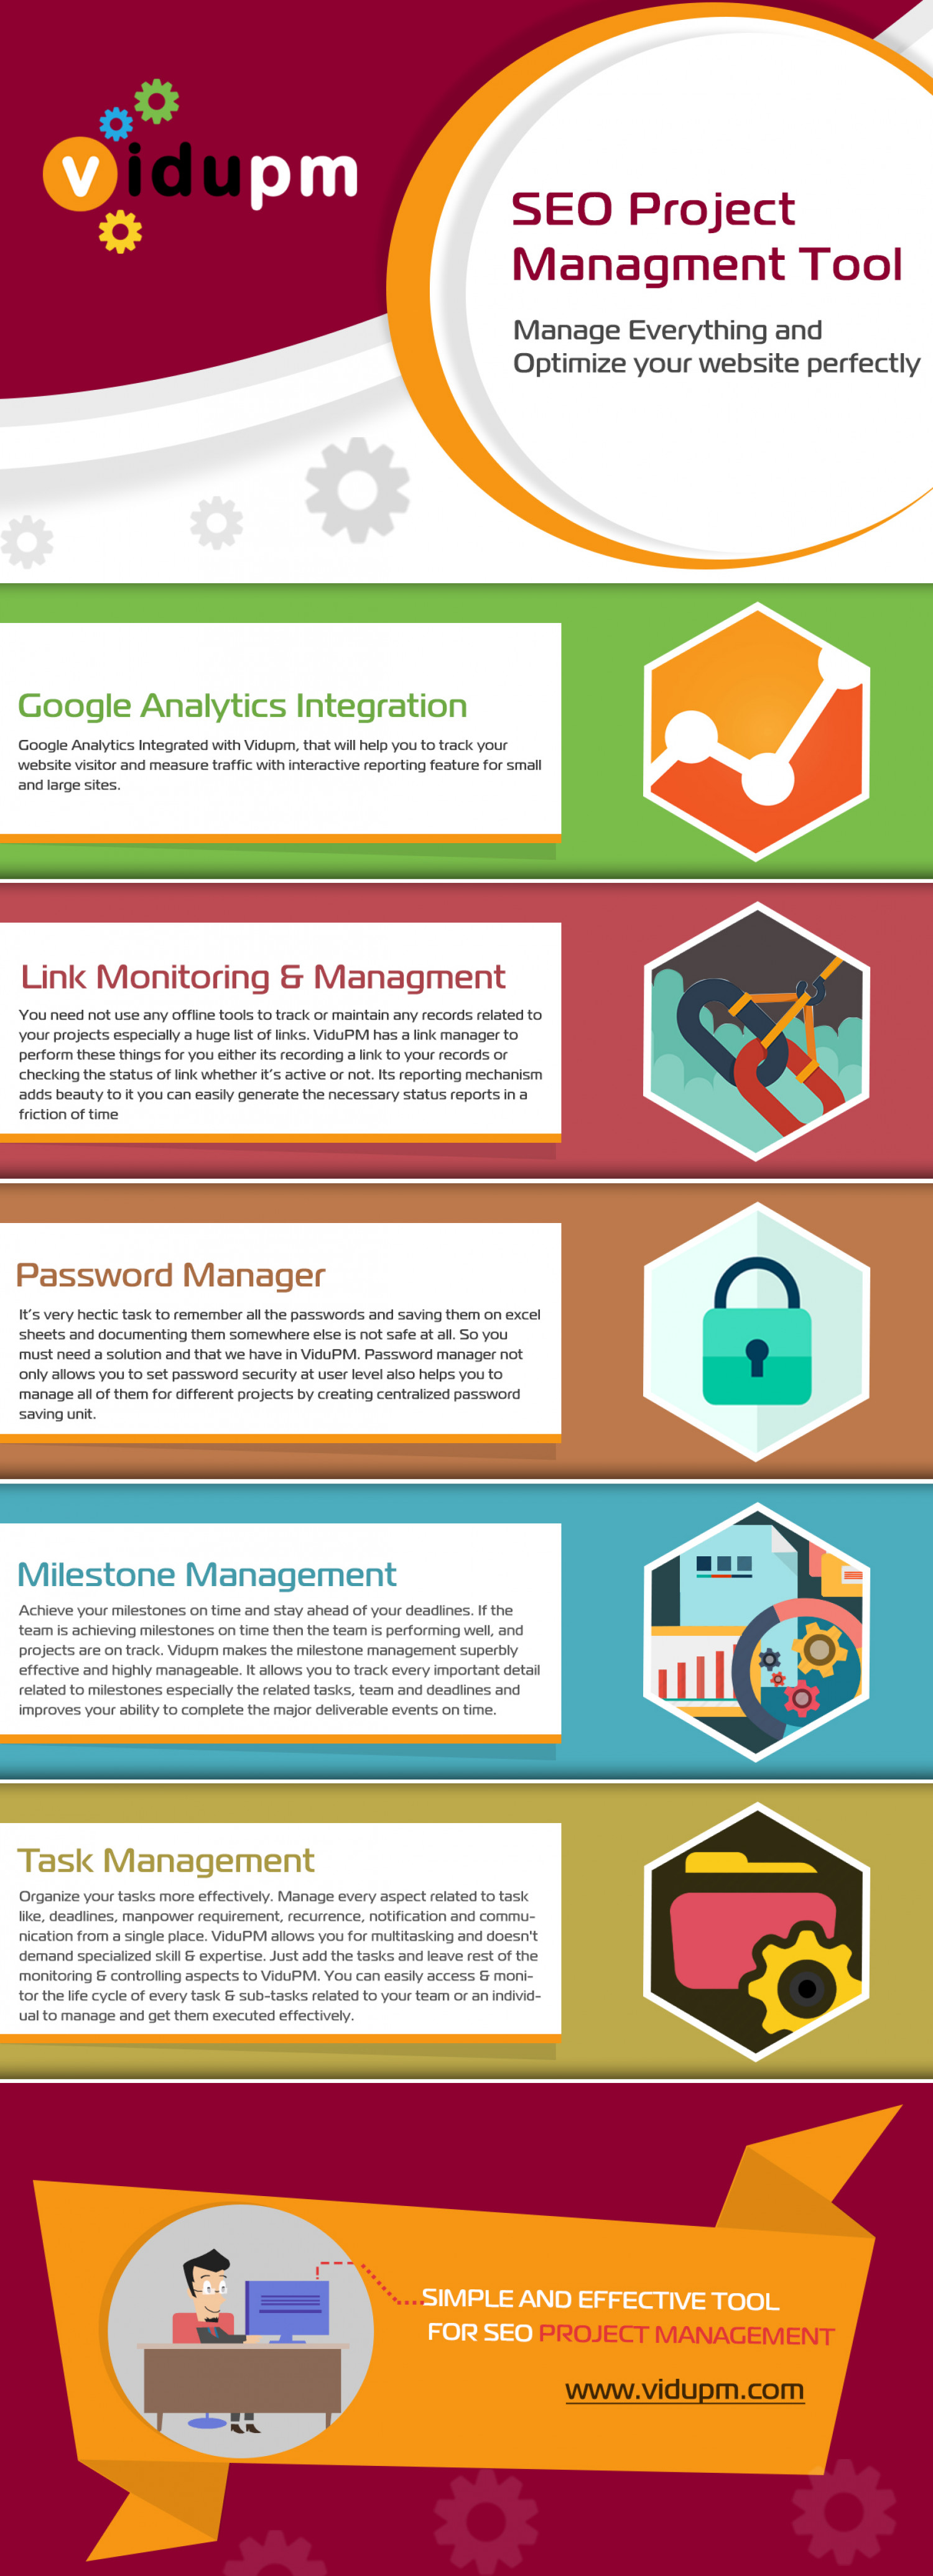 SEO Project Management Tool Infographic